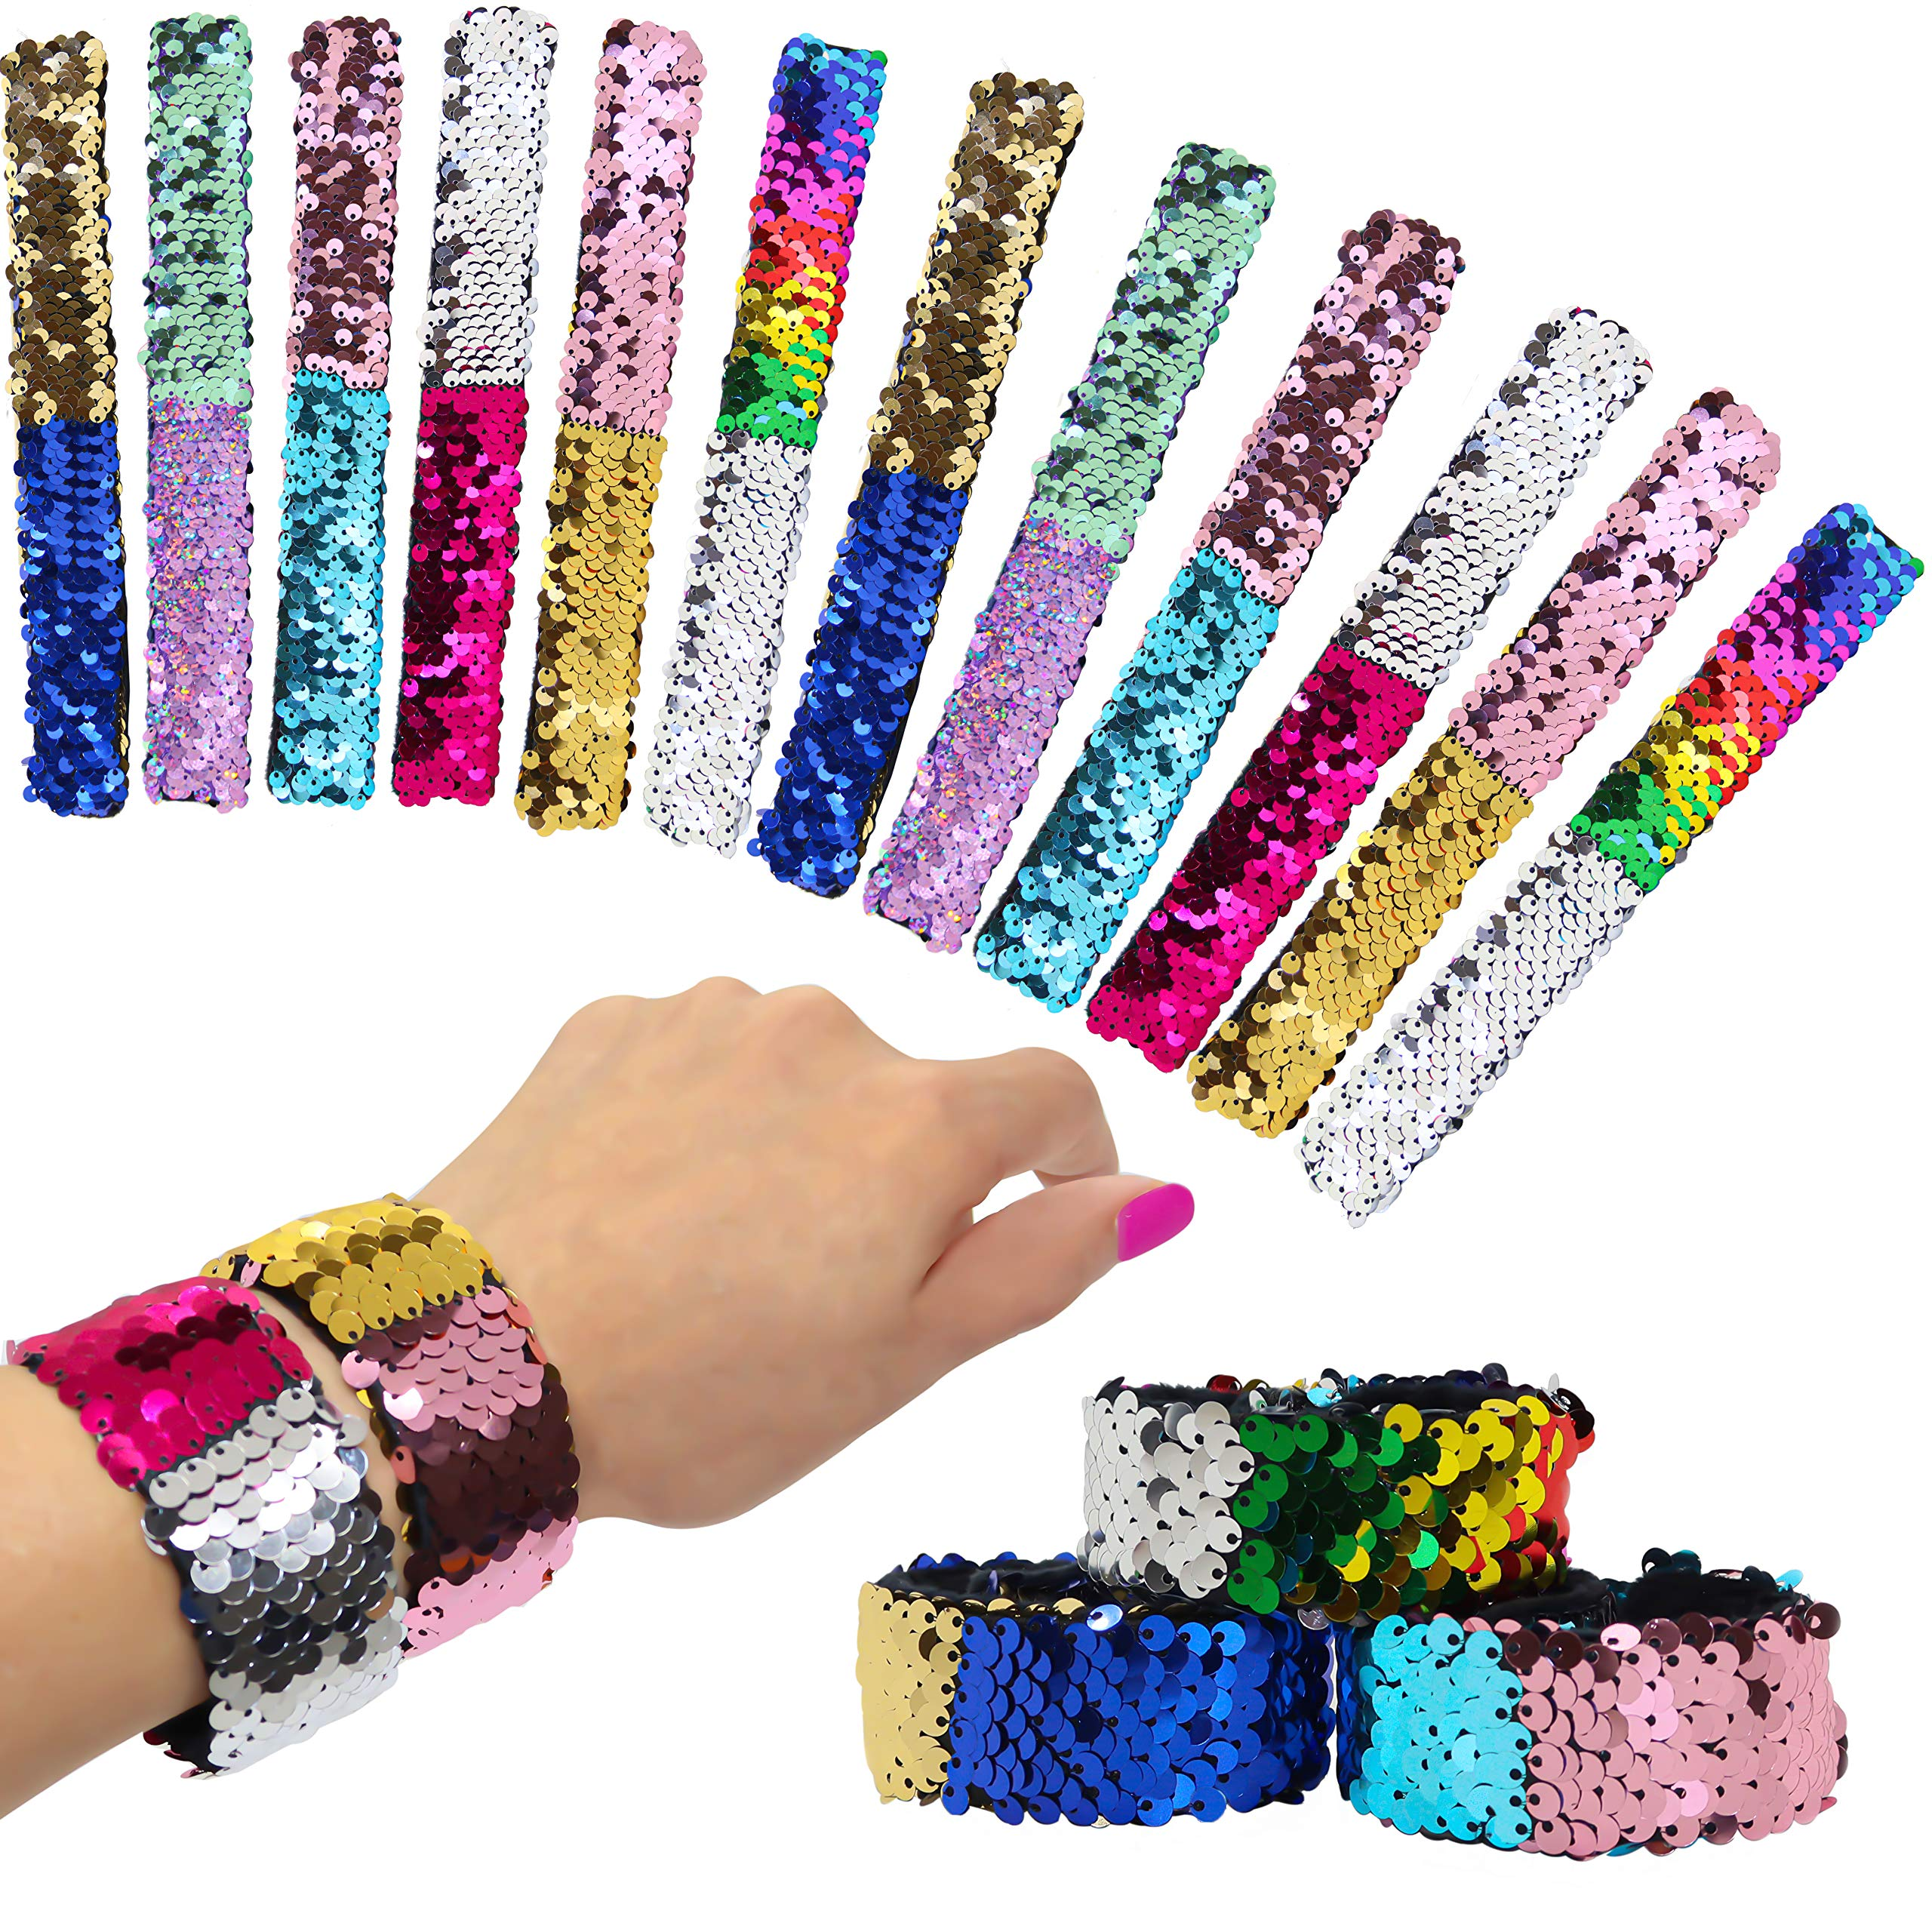 12 Pcs Reversible Sequins Slap Bracelets for Kids - Mermaid Style Magic Flip Sequin Snap Bracelet Set - Great Birthday Party Favors, Holiday Stocking Stuffers for Little Girls by FROG SAC